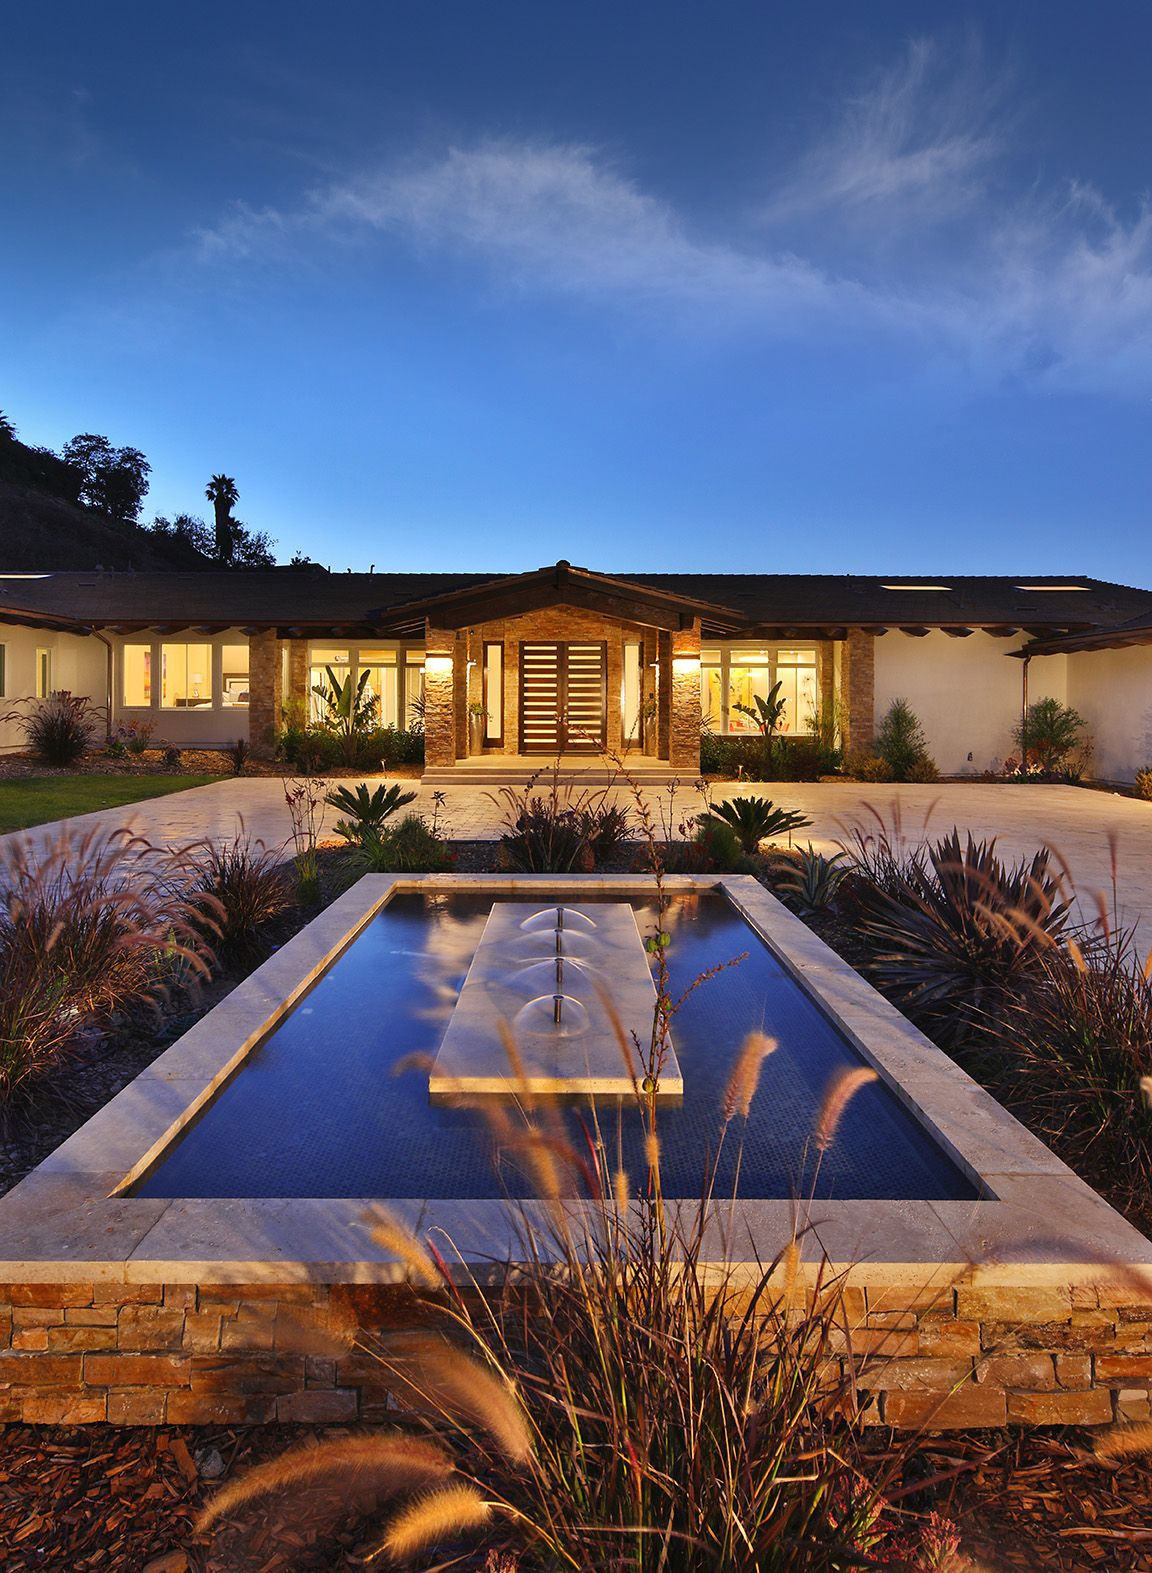 Luxury Modern Ranch Style Home Exterior Luxury Homes Dream Houses Ranch Style Homes Modern Ranch